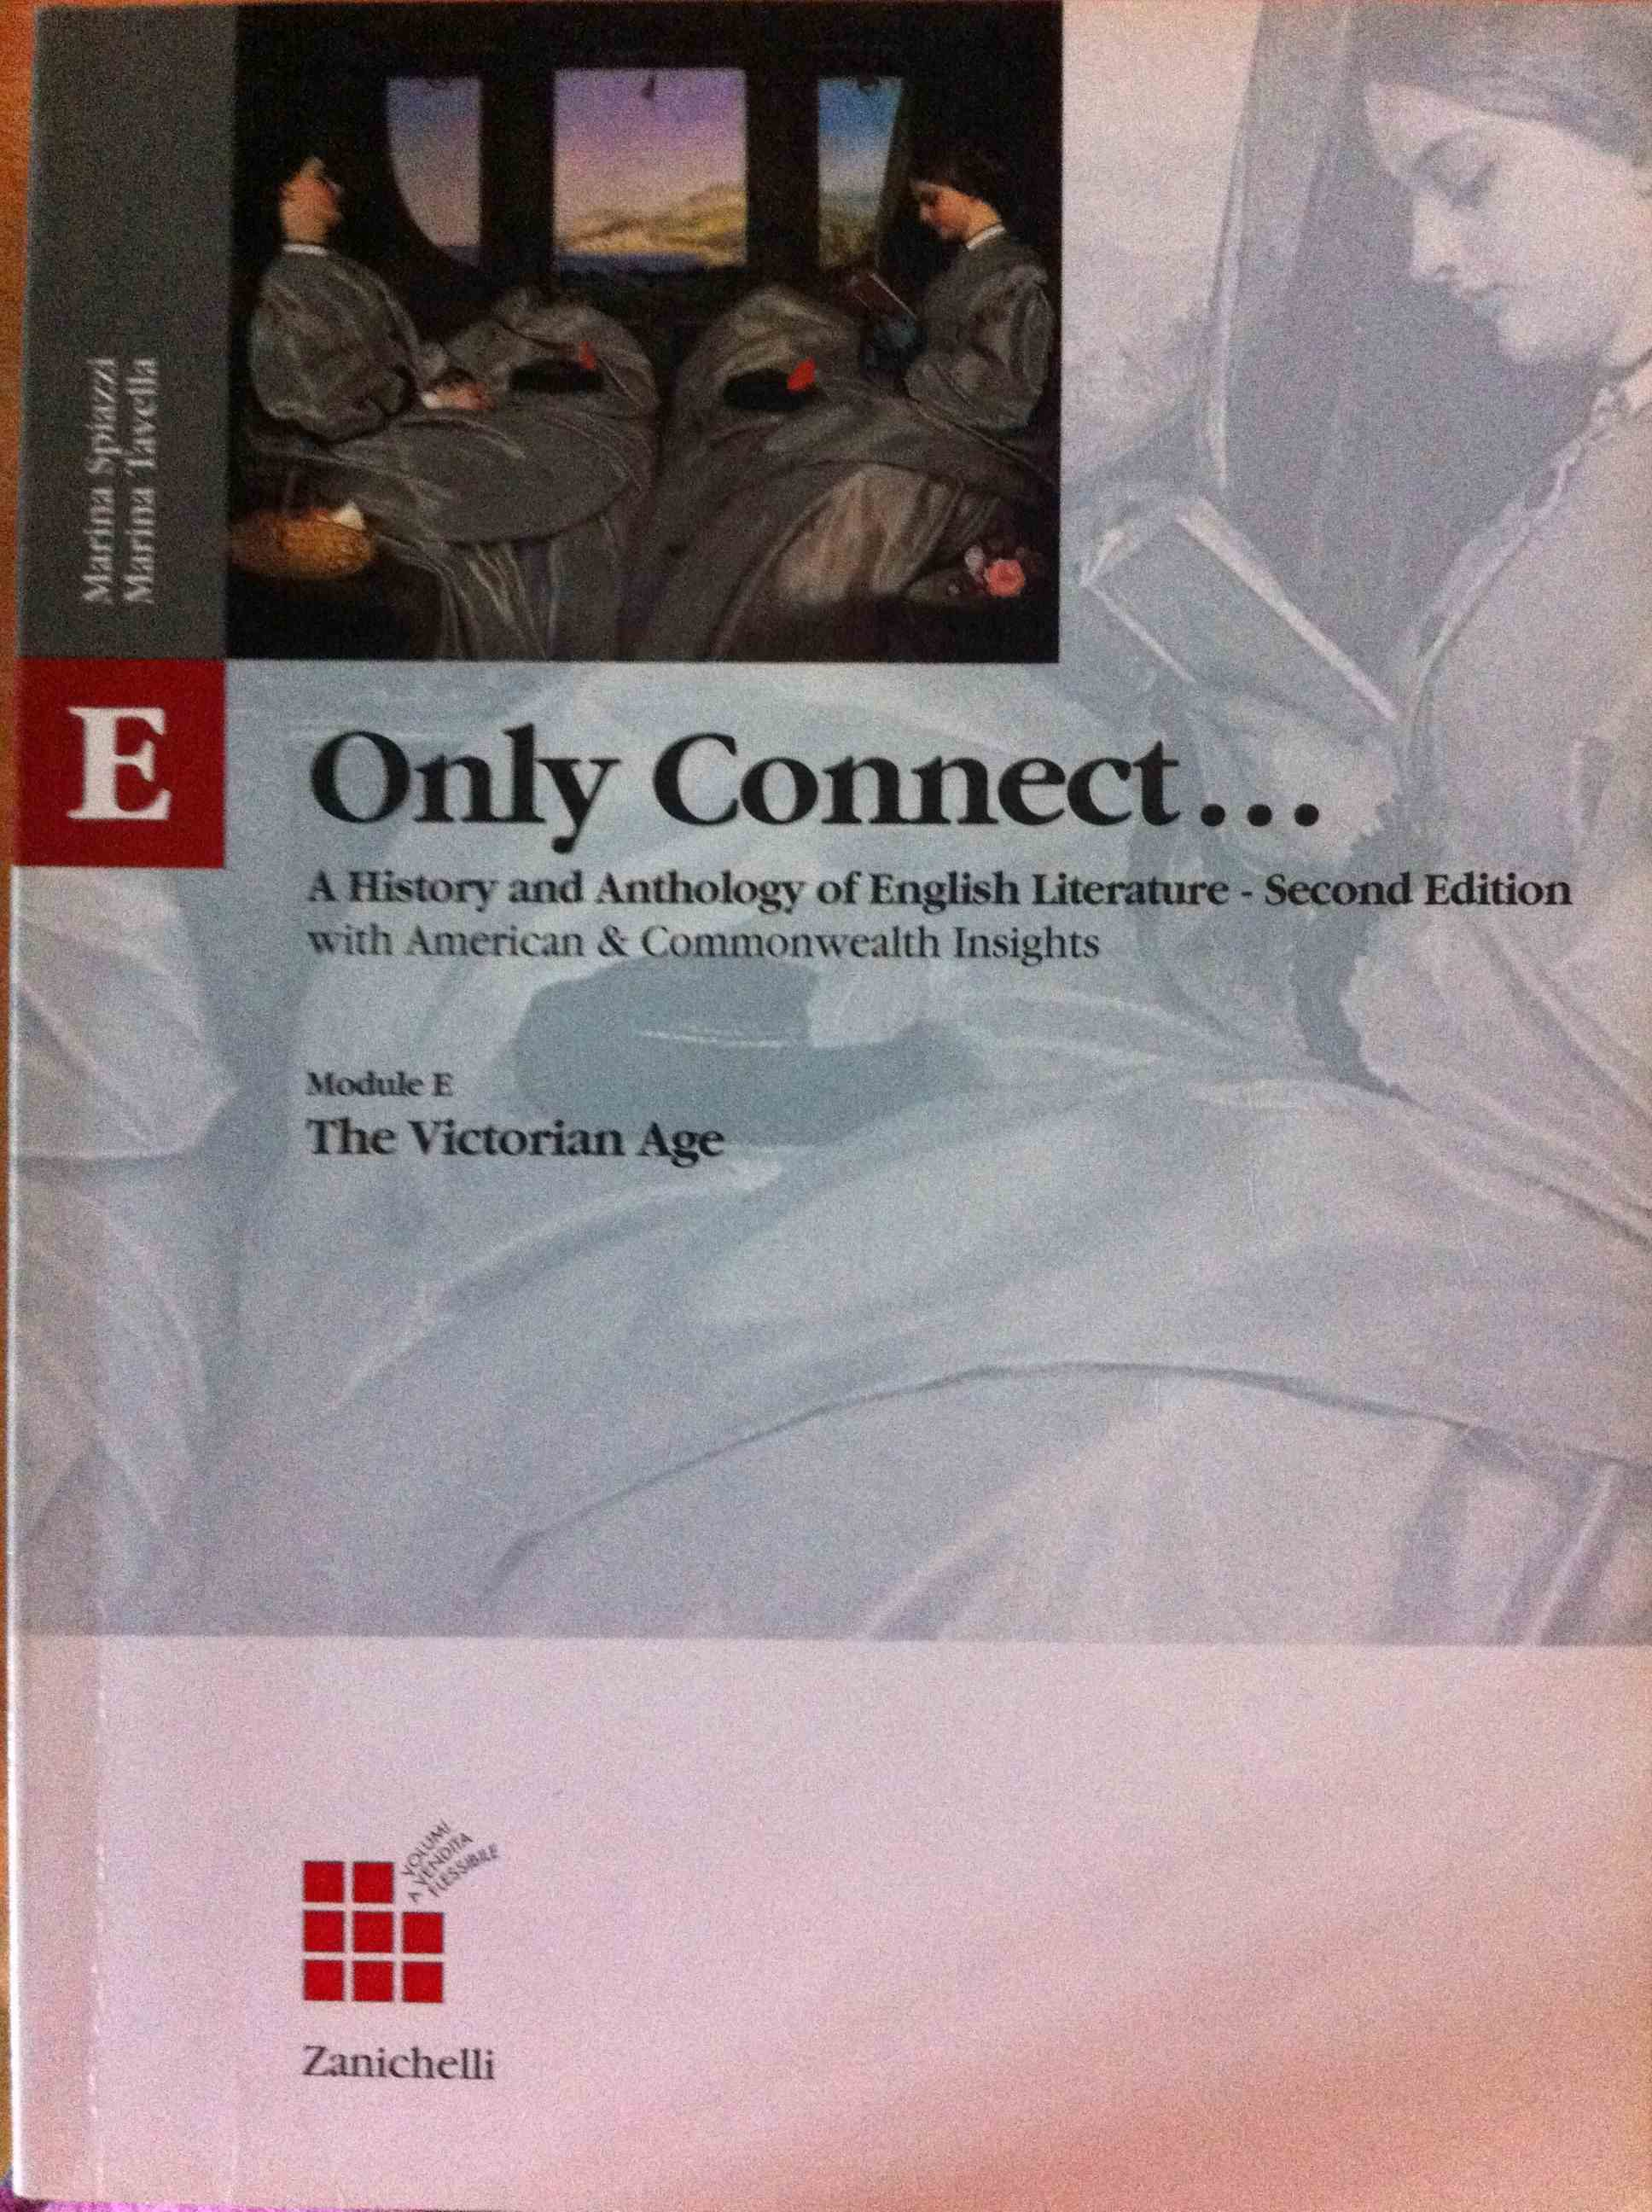 Only connect. A history and anthology of English literature with American and Commonwealth insights. Modulo E. Per le Scuole superiori